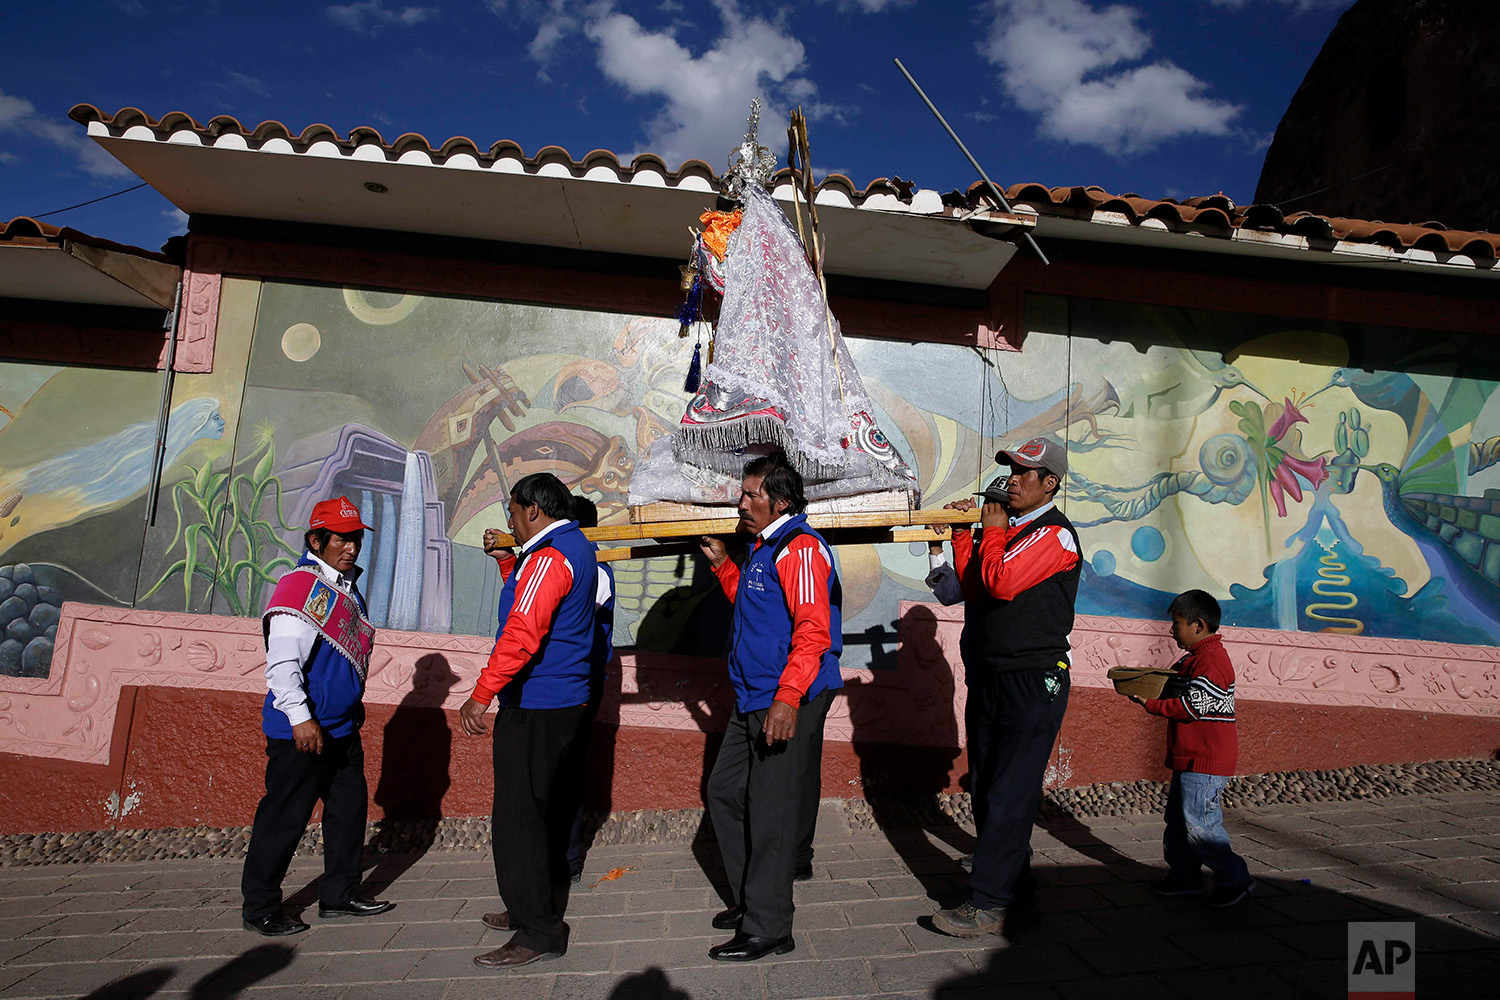 """""""Cargadores"""" or male carriers walk with a statue of Our Lady of Copacabana belonging to resident Libia Espinoza, in a religious procession honoring the Bolivian virgin, in Cuzco, Peru, Aug. 5, 2018. (AP Photo/Martin Mejia)"""